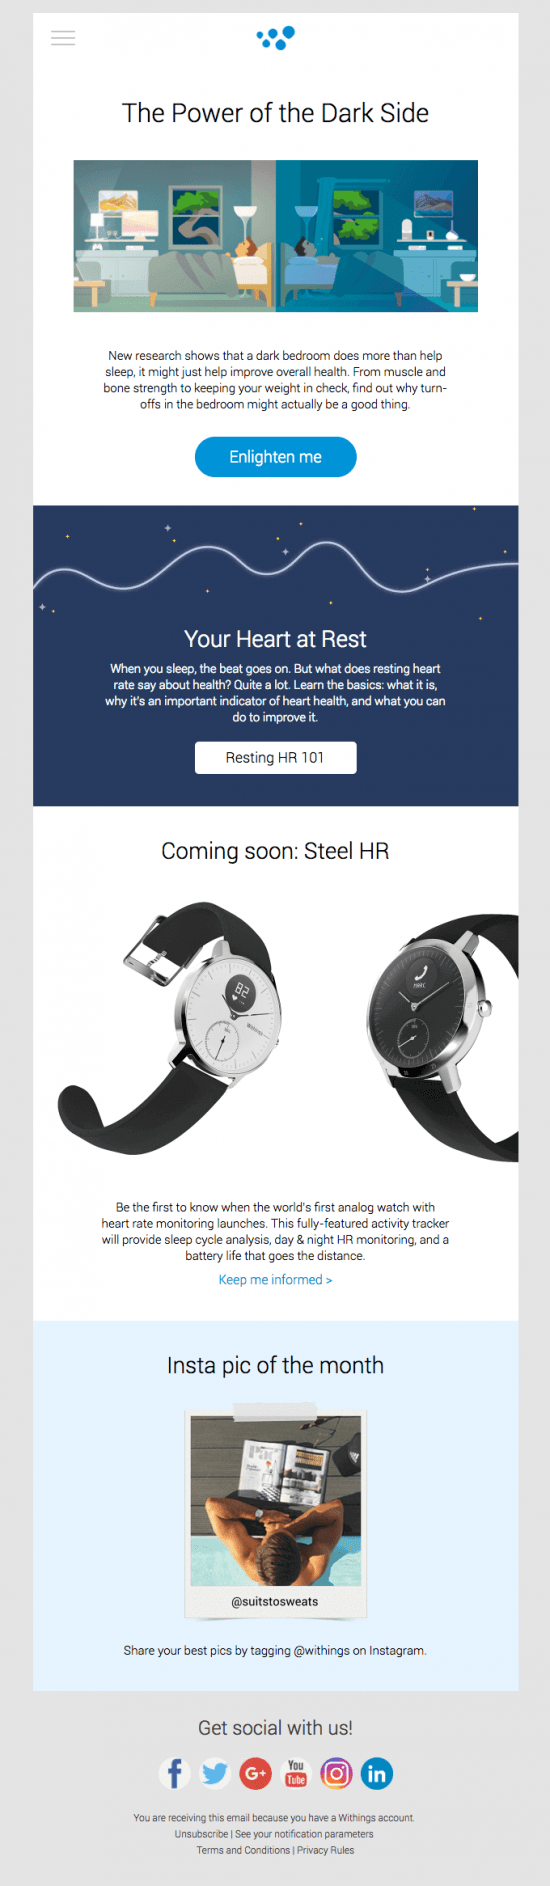 Great email creative by Withings